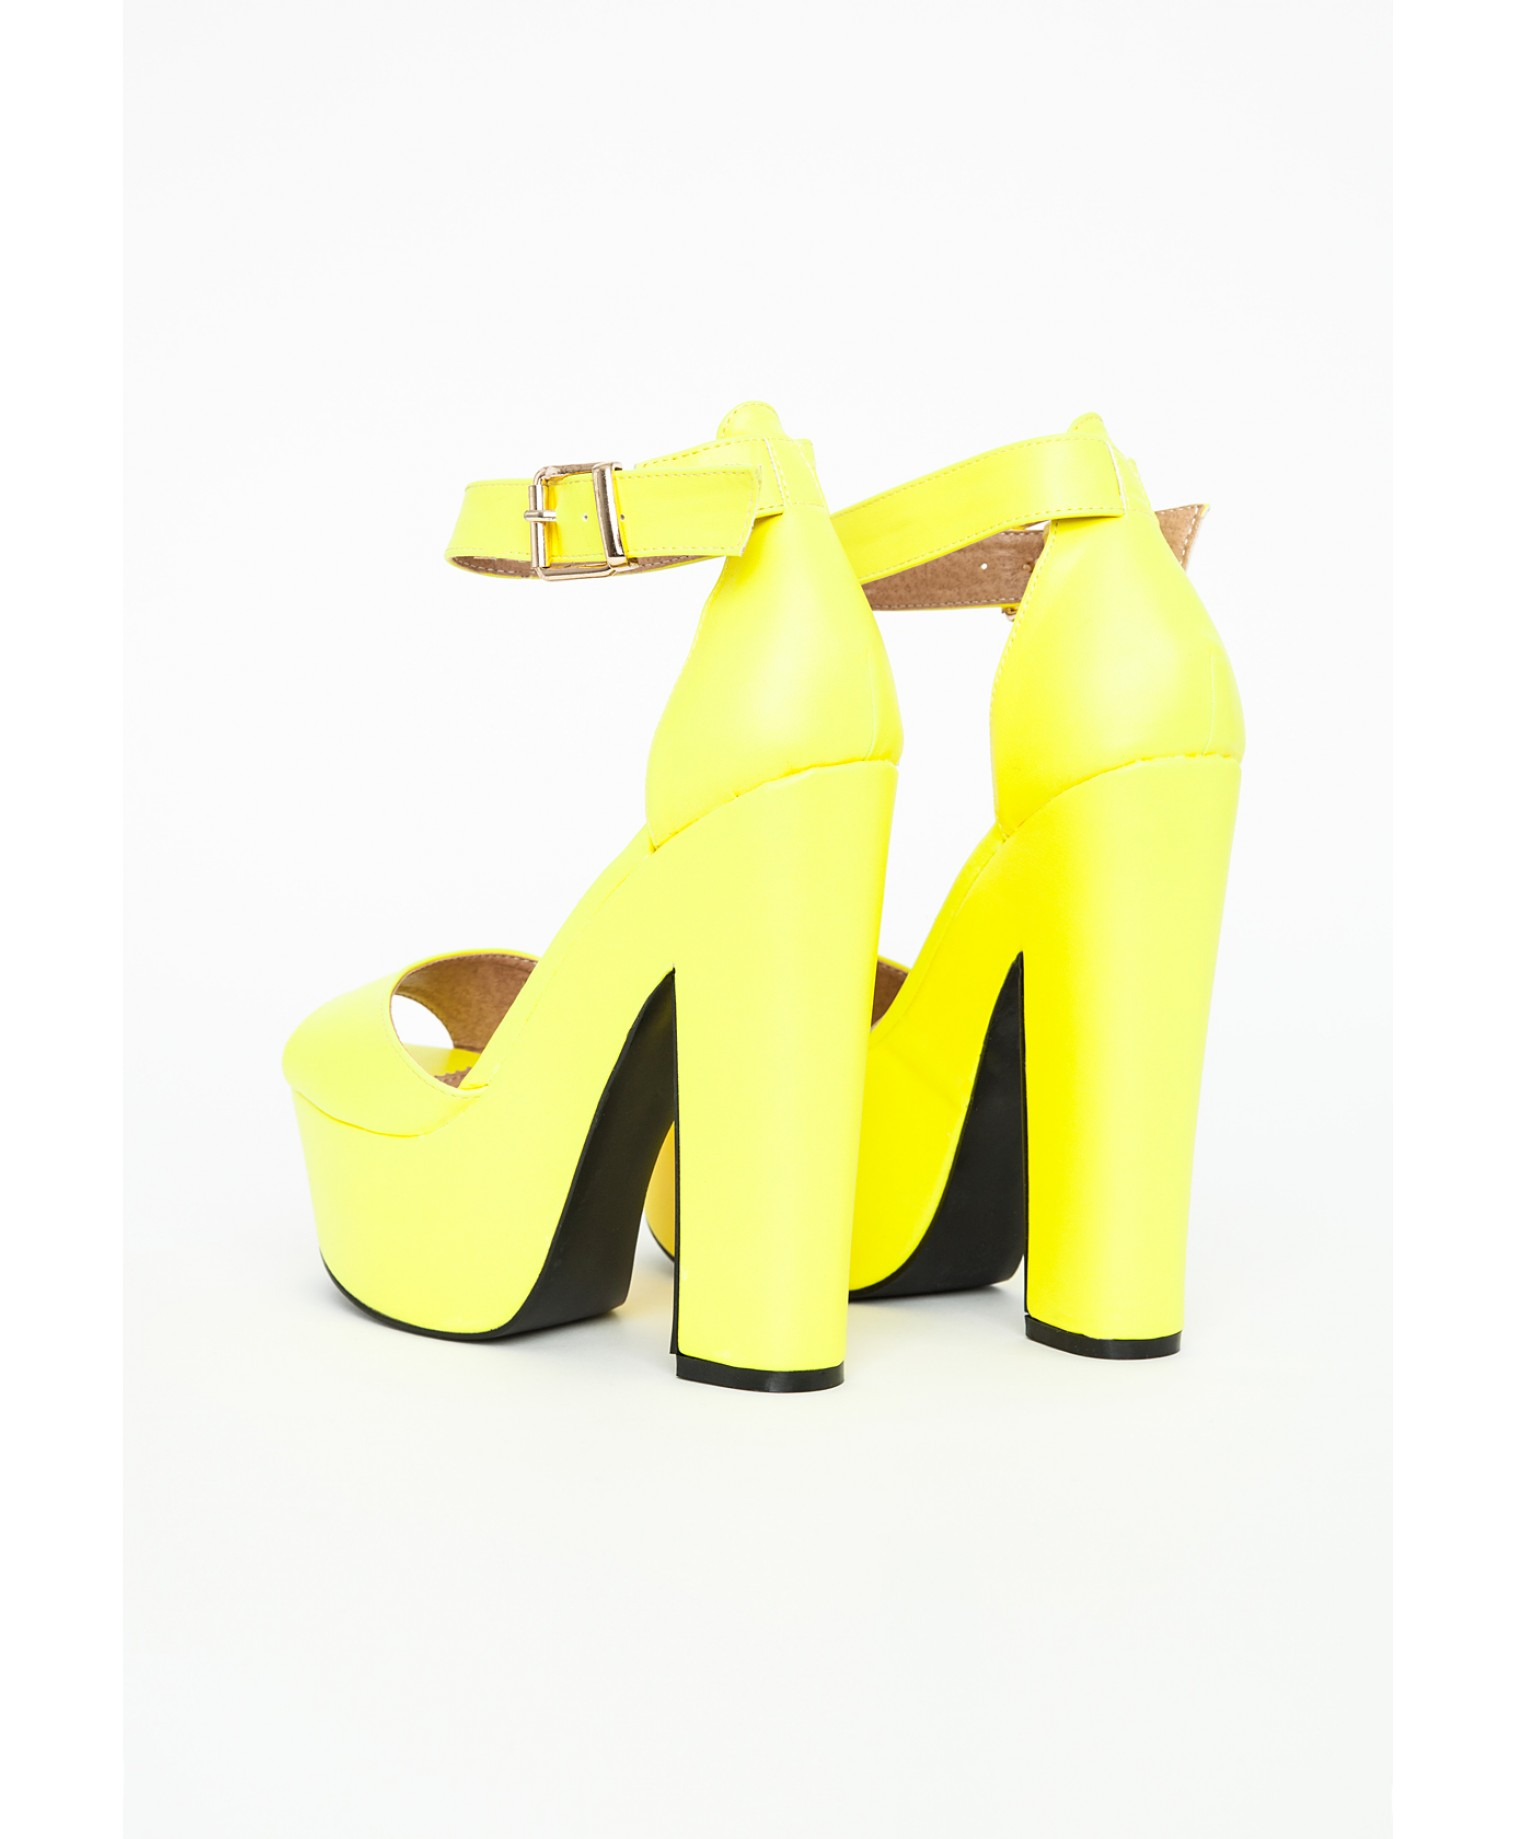 52bb26b89b2 Lyst - Missguided Alana Platform Block Heels In Neon Yellow in Yellow